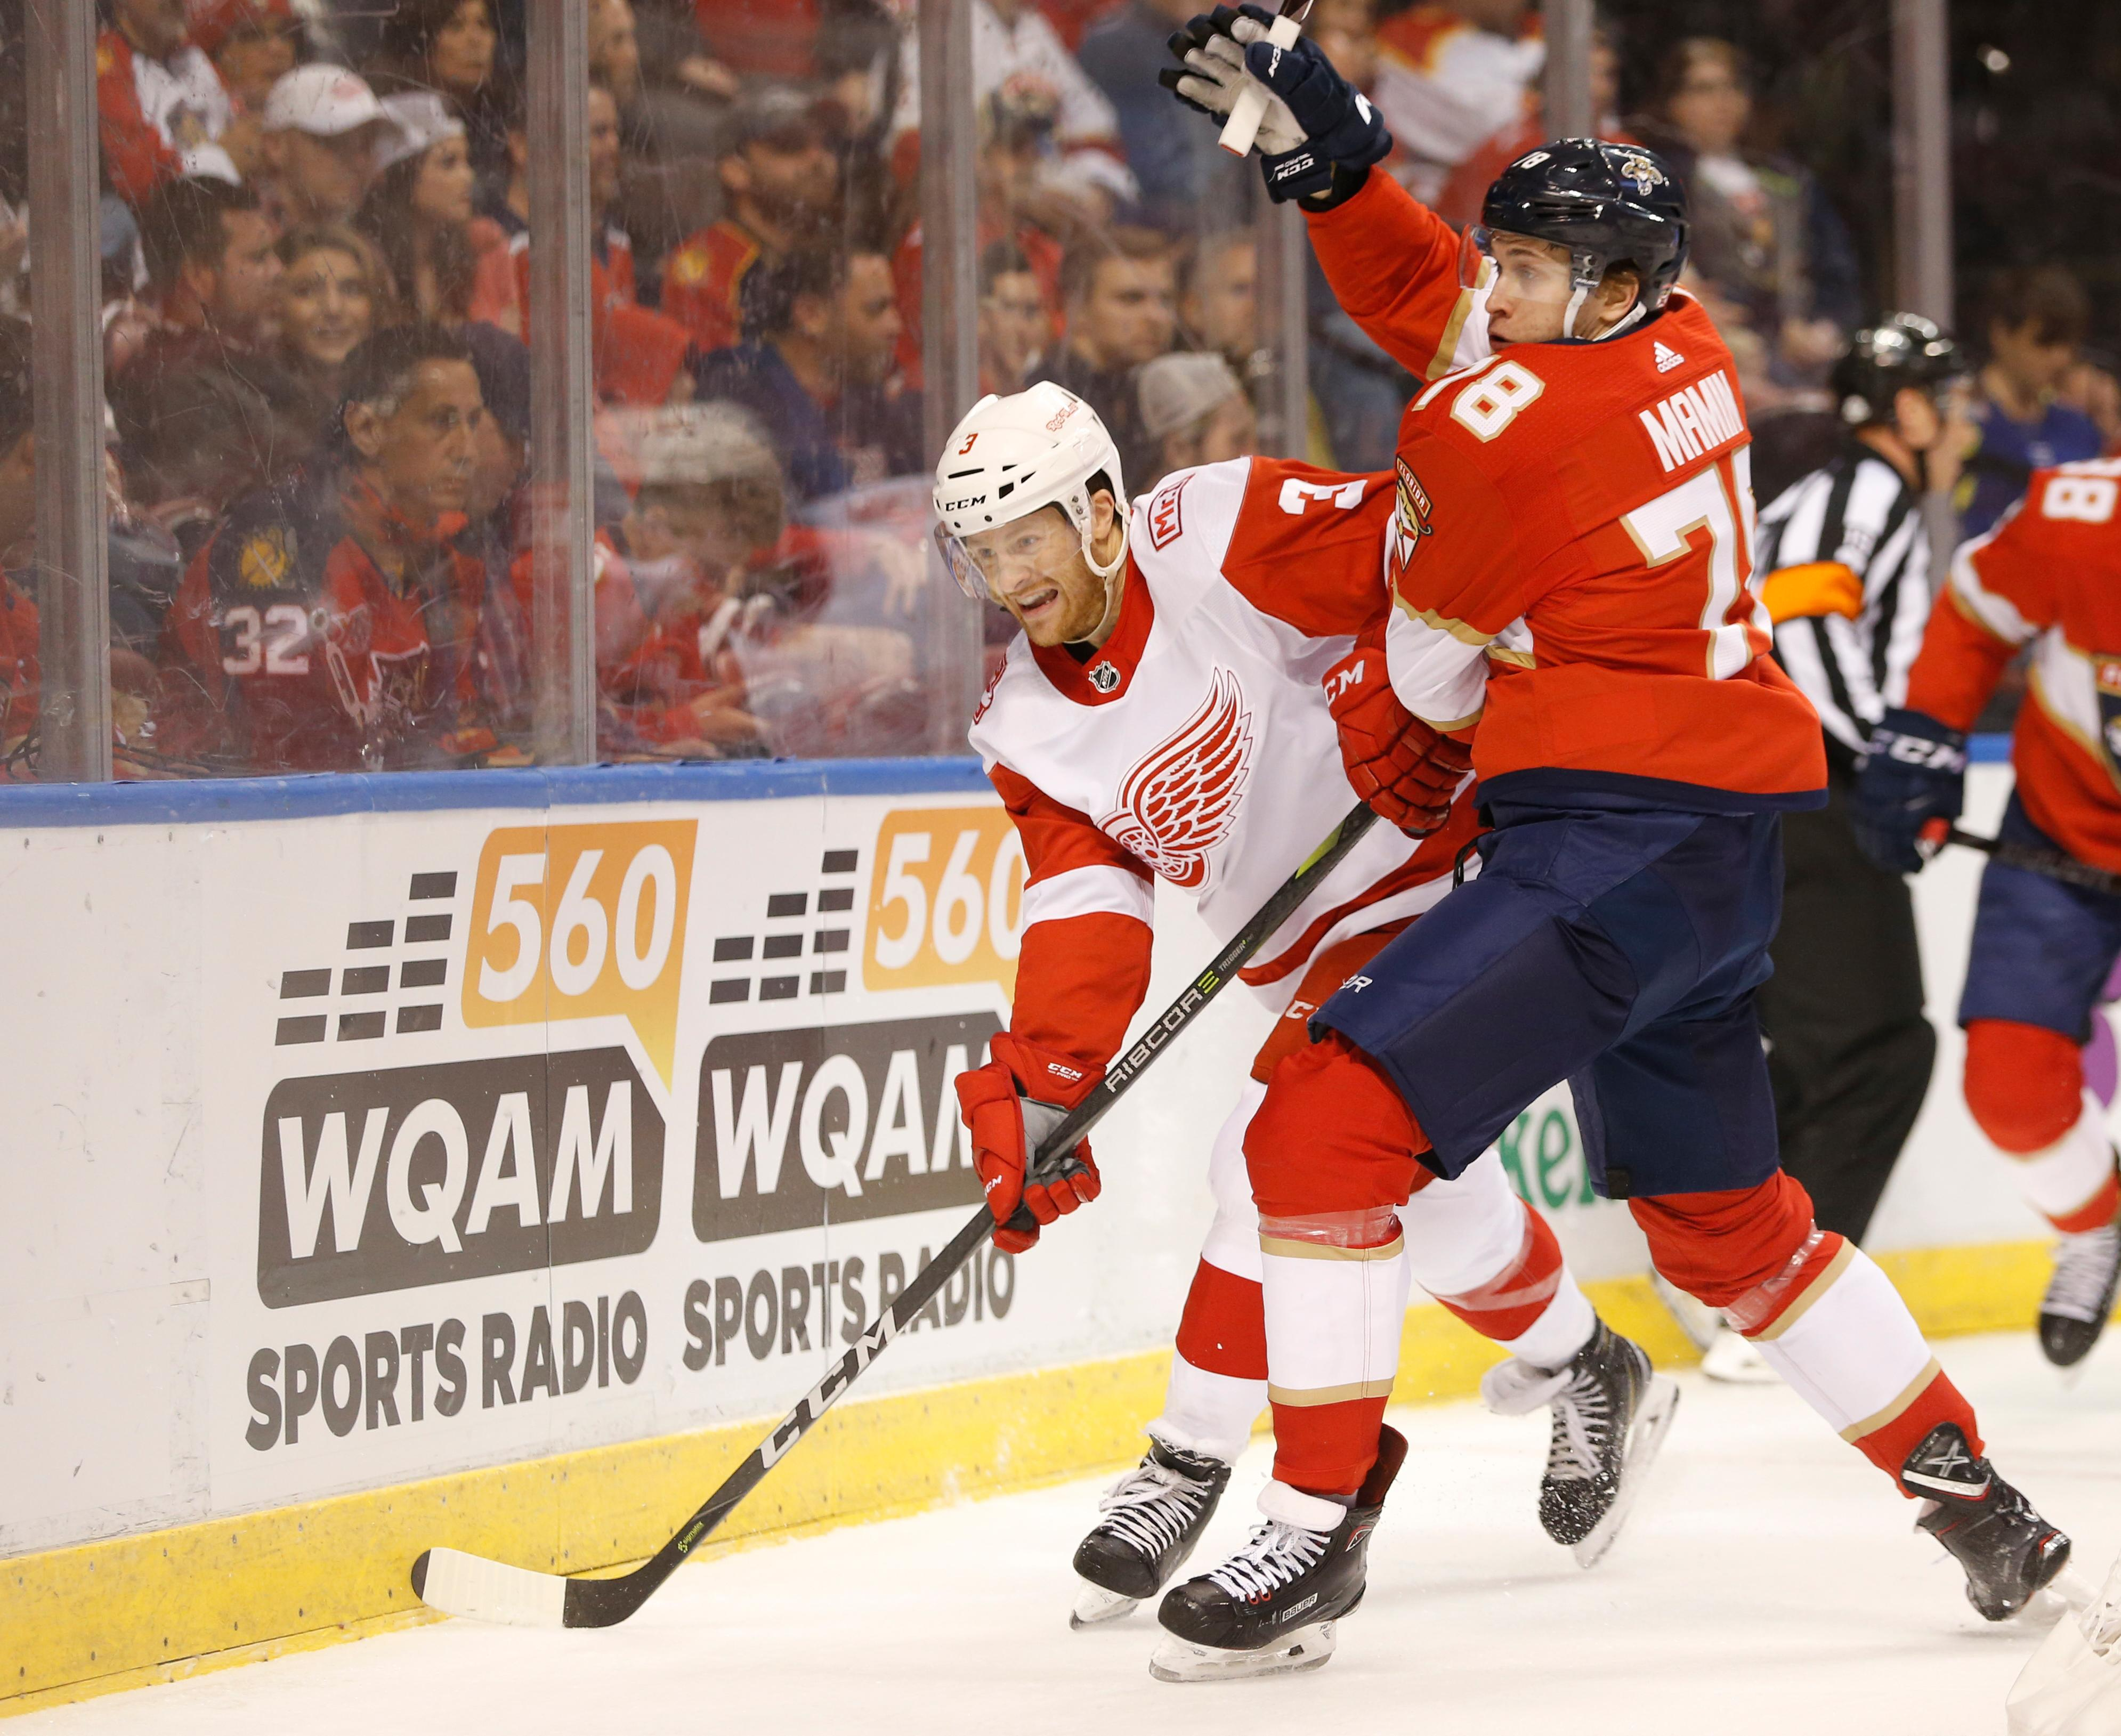 Detroit Red Wings defenseman Nick Jensen (3) and Florida Panthers center Maxim Mamin (78) battle for the puck during the first period of an NHL hockey game, Saturday, Feb. 3, 2018 in Sunrise, Fla. (AP Photo/Wilfredo Lee)